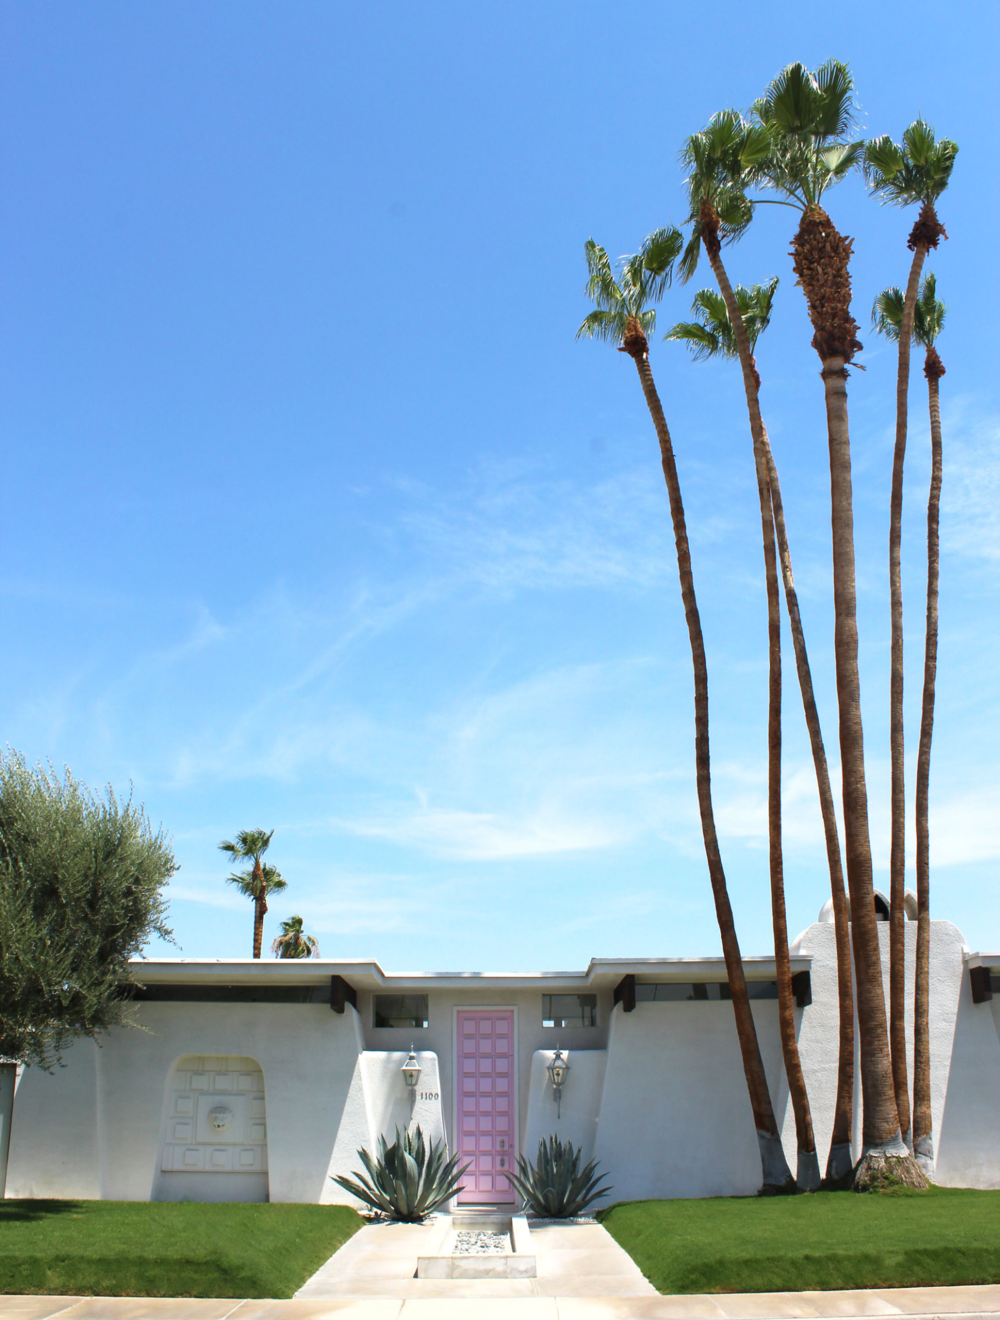 Pink door house in Palm Springs - love the midcentury modern architecture and palm trees | Sundays and Somedays